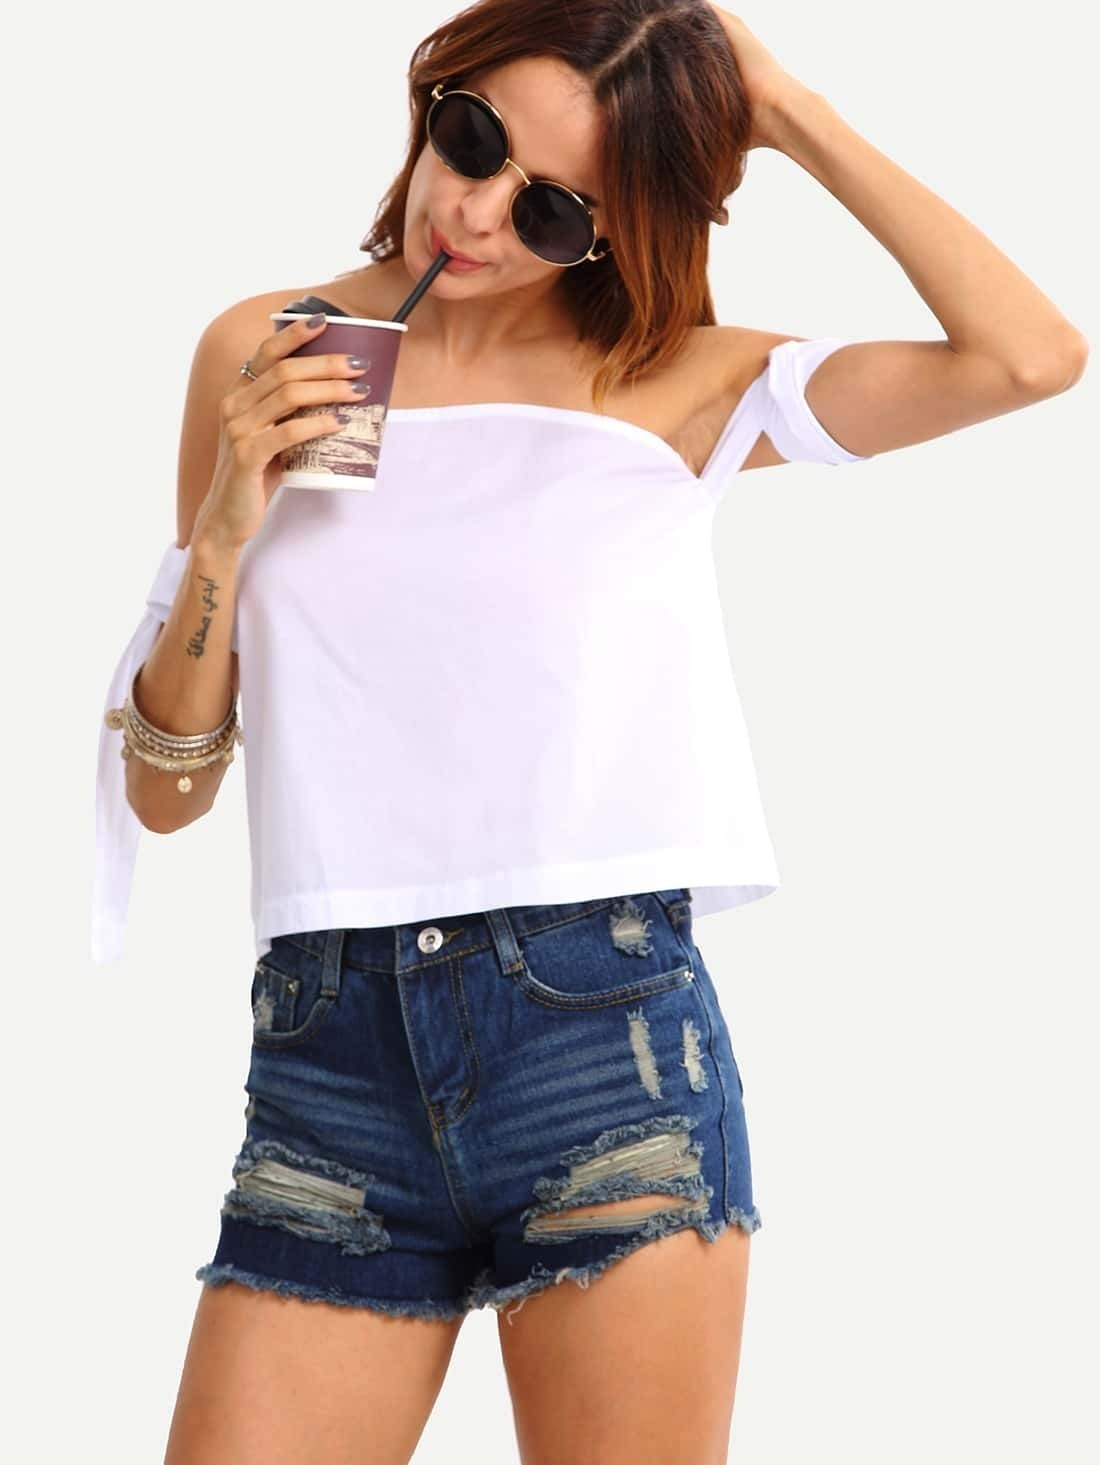 cb5e82251f56f6 Off The Shoulder Self-Tie White Top EmmaCloth-Women Fast Fashion Online